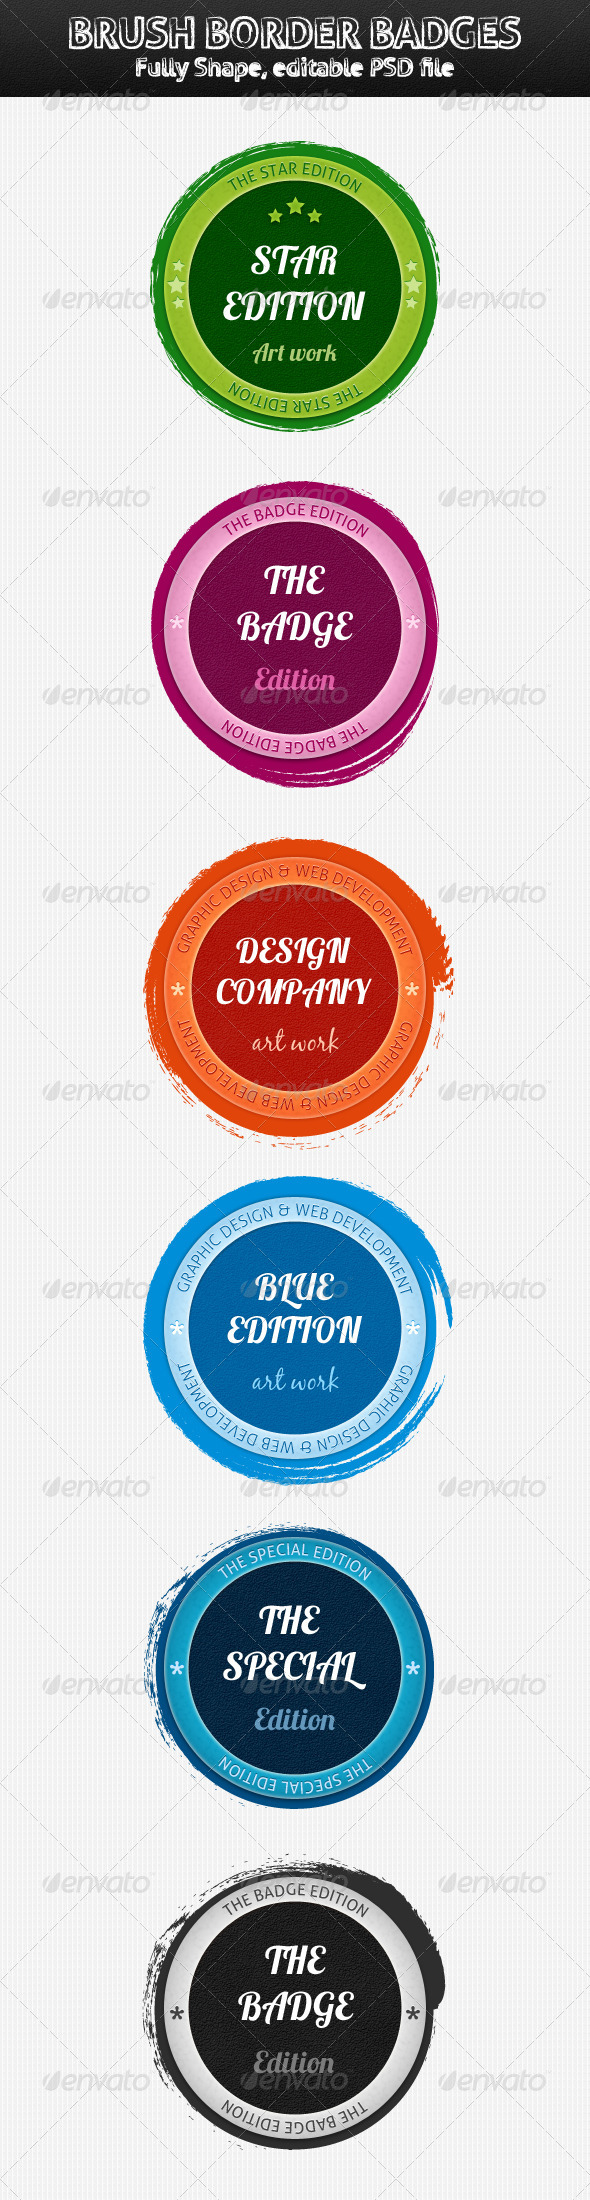 GraphicRiver Brush Border Badges 3277062